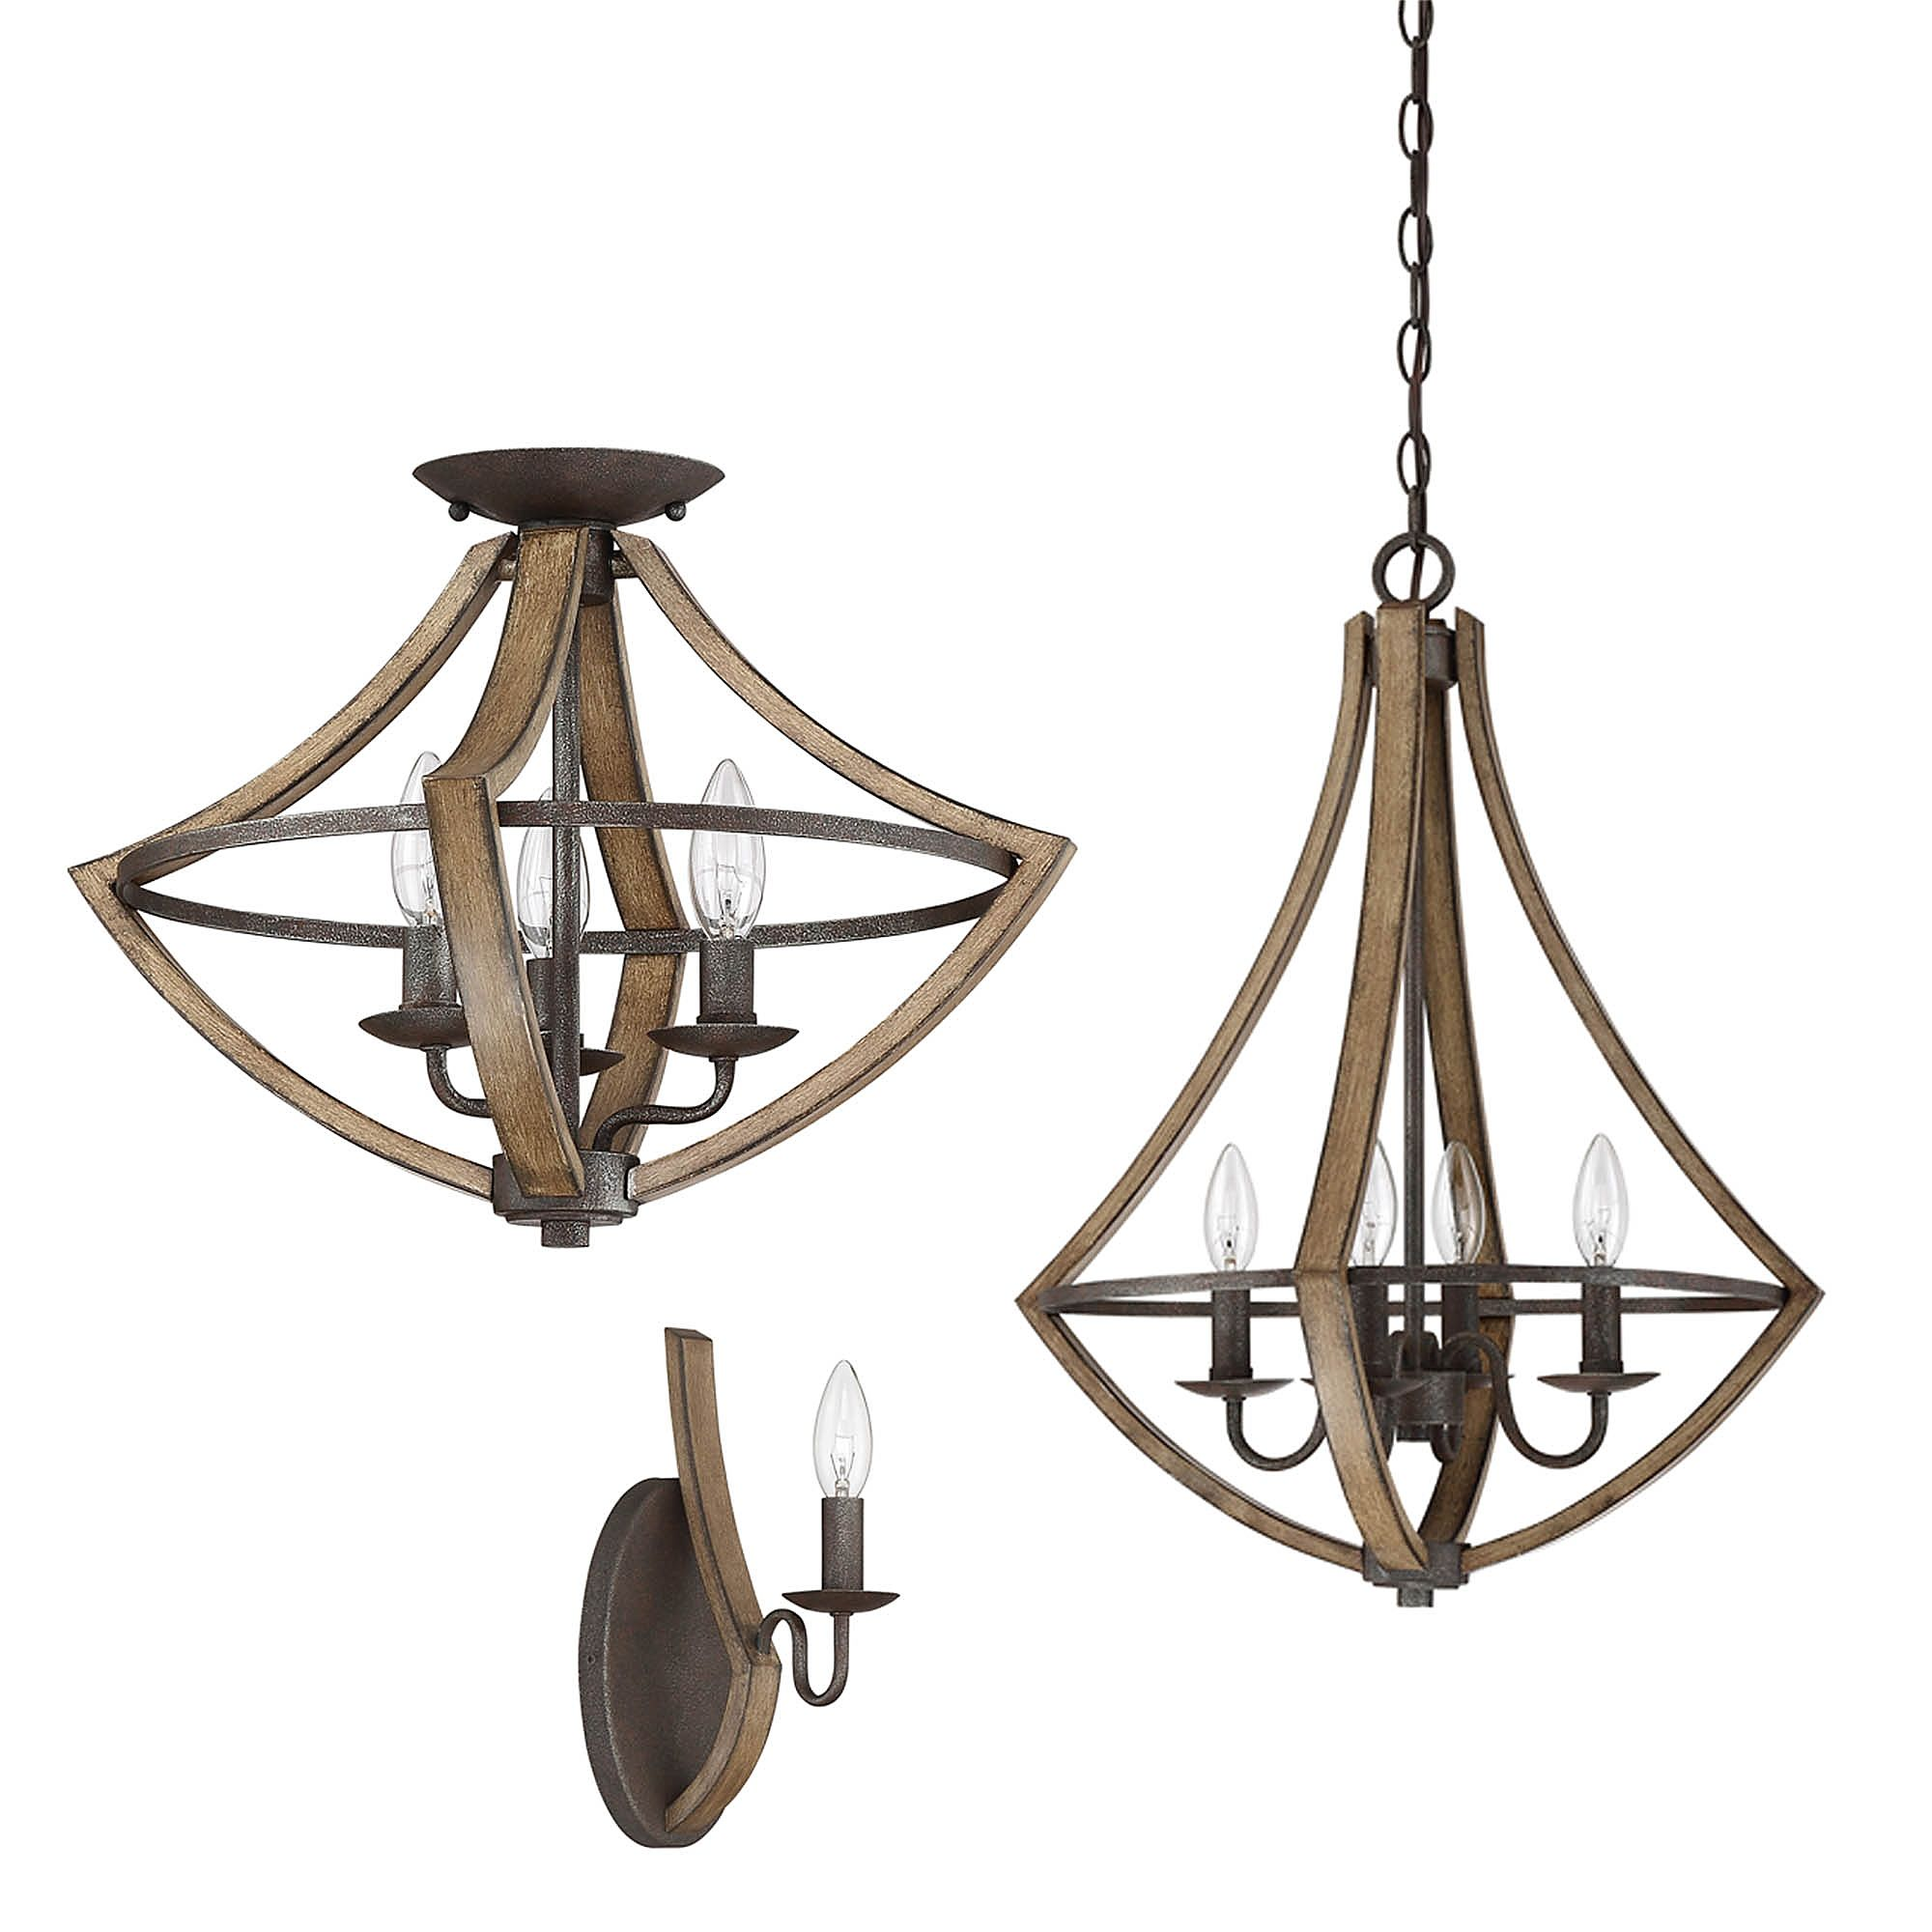 Quoizel® Shire Lighting Collection in Rustic Black Cabin